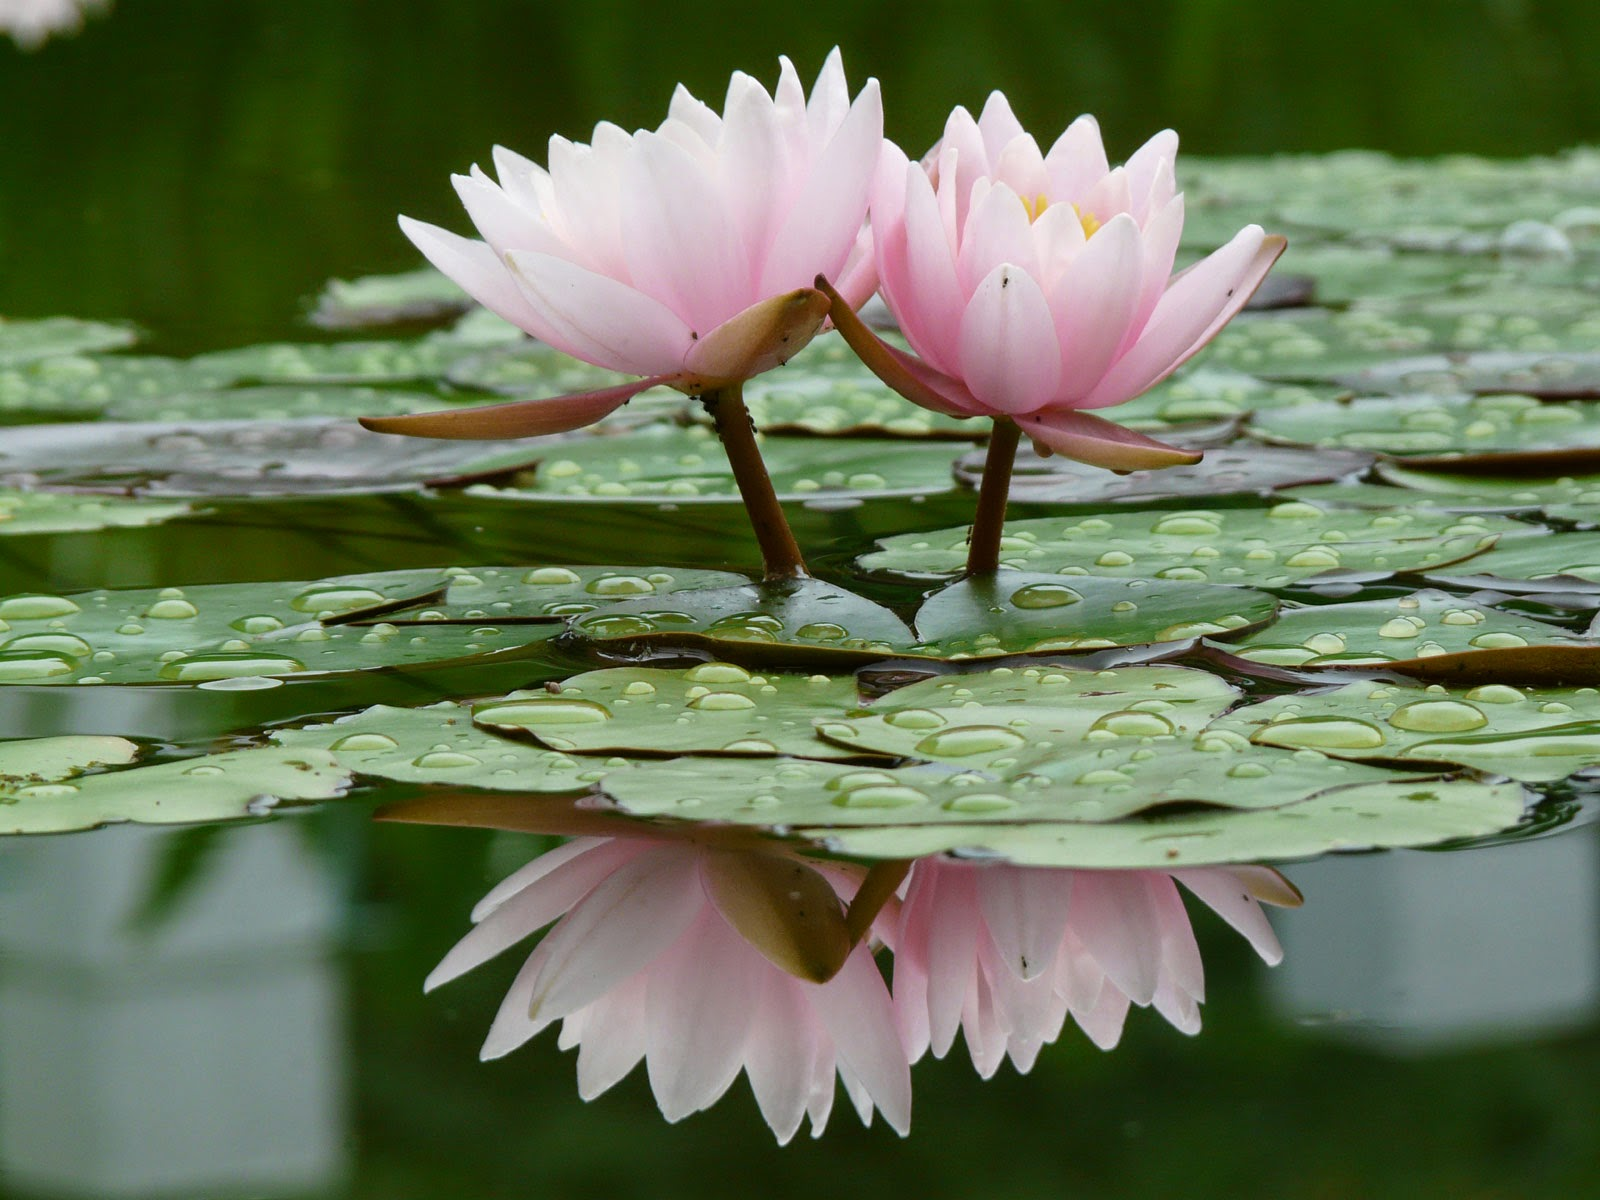 real flowers of lotus images  hd wallpapers, Natural flower